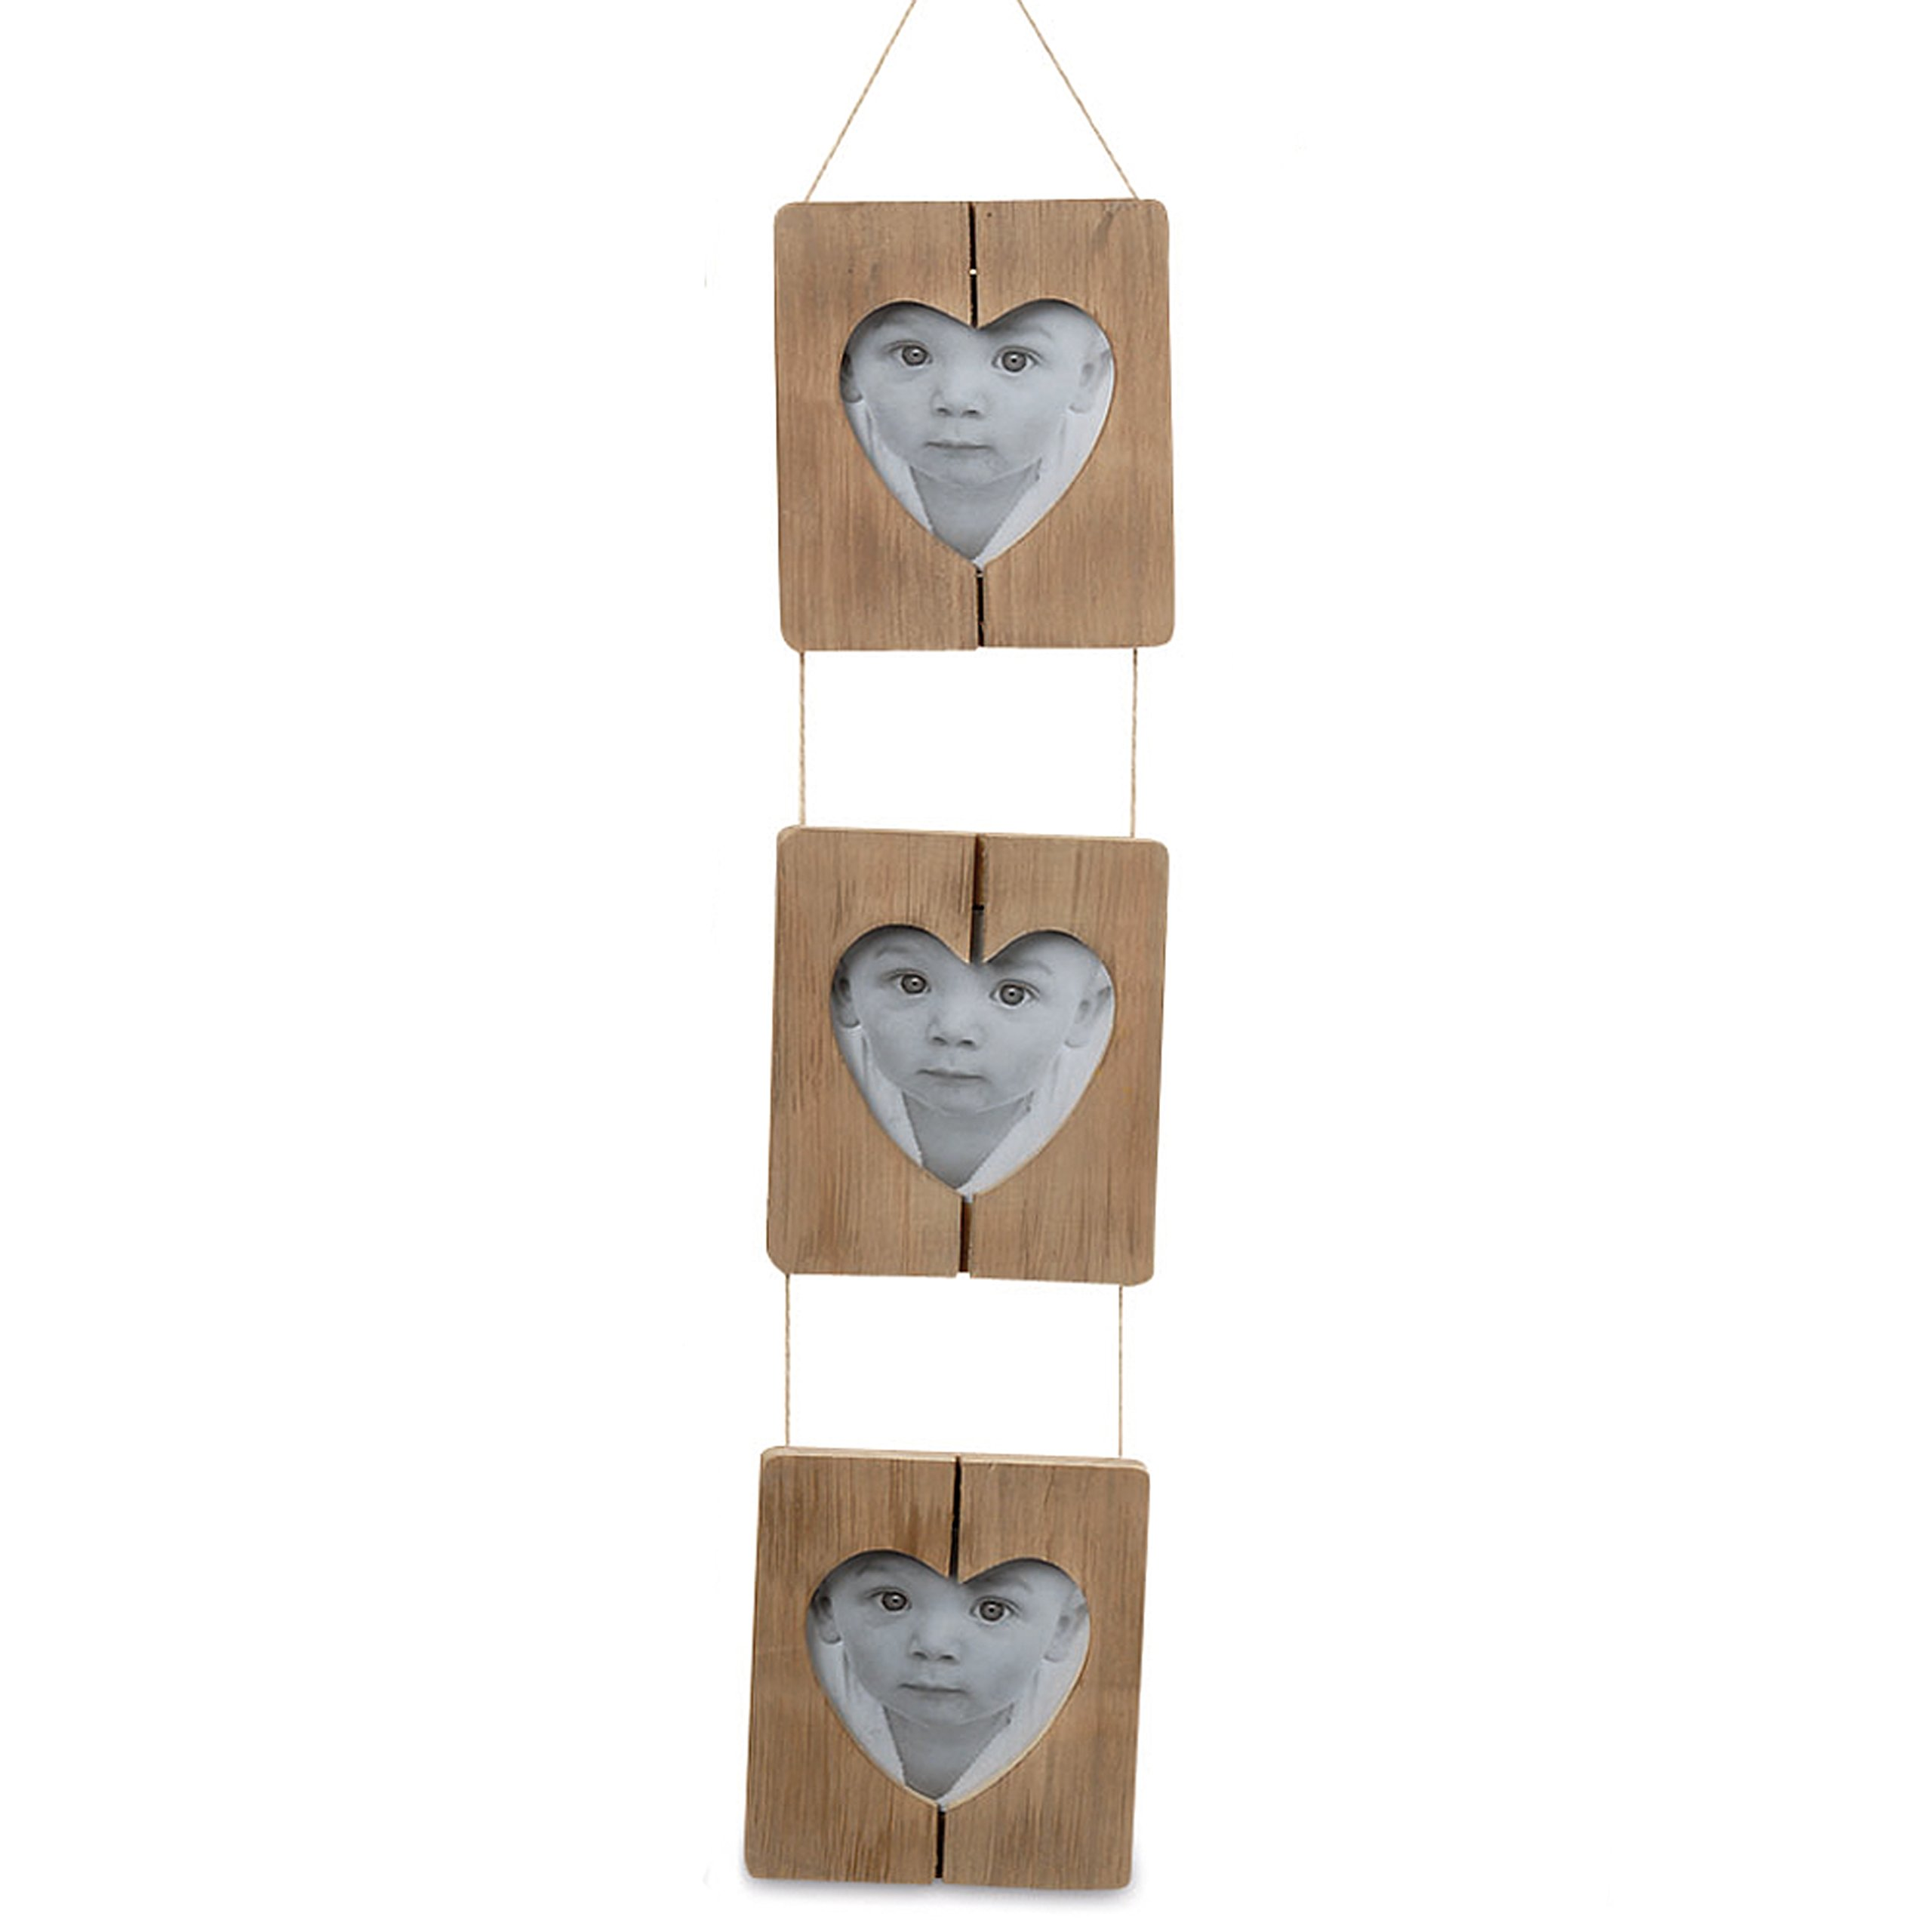 Whole House Worlds The Farmer's Market Trio of Heart Photo Frames, Shiplap, Natural Twine, Rustic Brown Pine Wood, Crafted By Hand, 4 3/4 Wide, 20 Inches Long, By